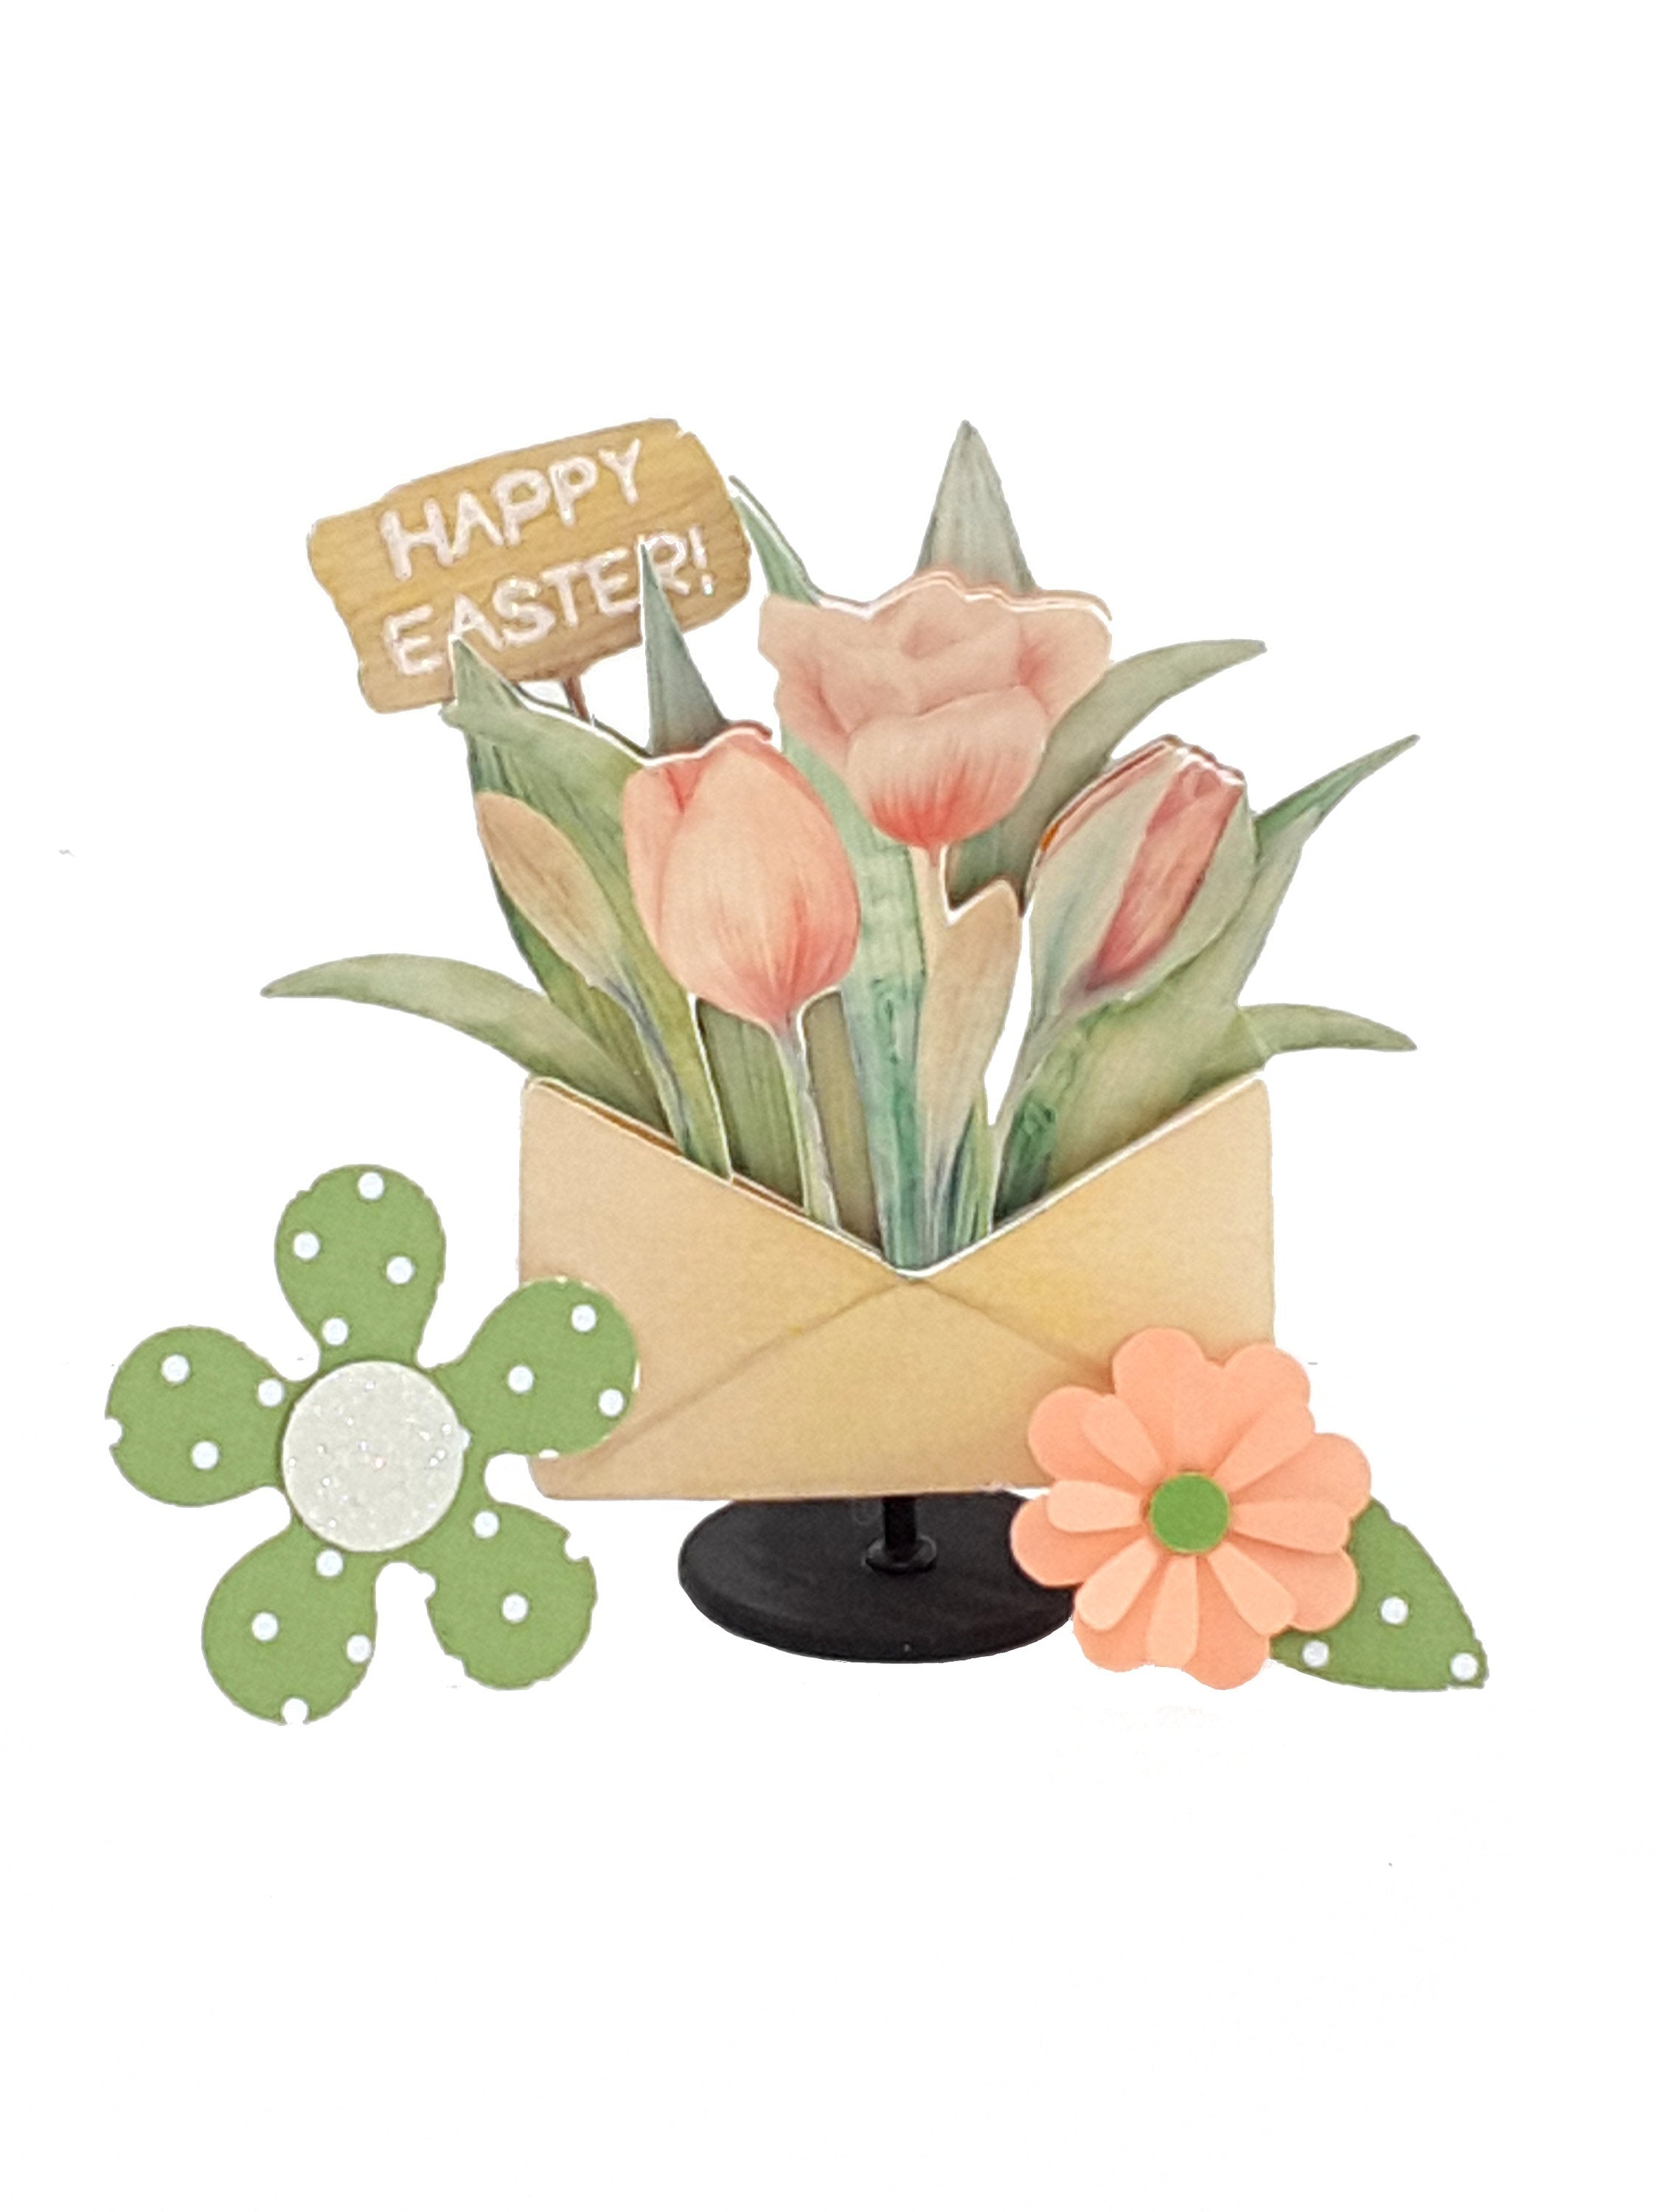 Personalized Easter Greeting Card with Stand Up 3D Peach Tulips - TheLastWordBish.com